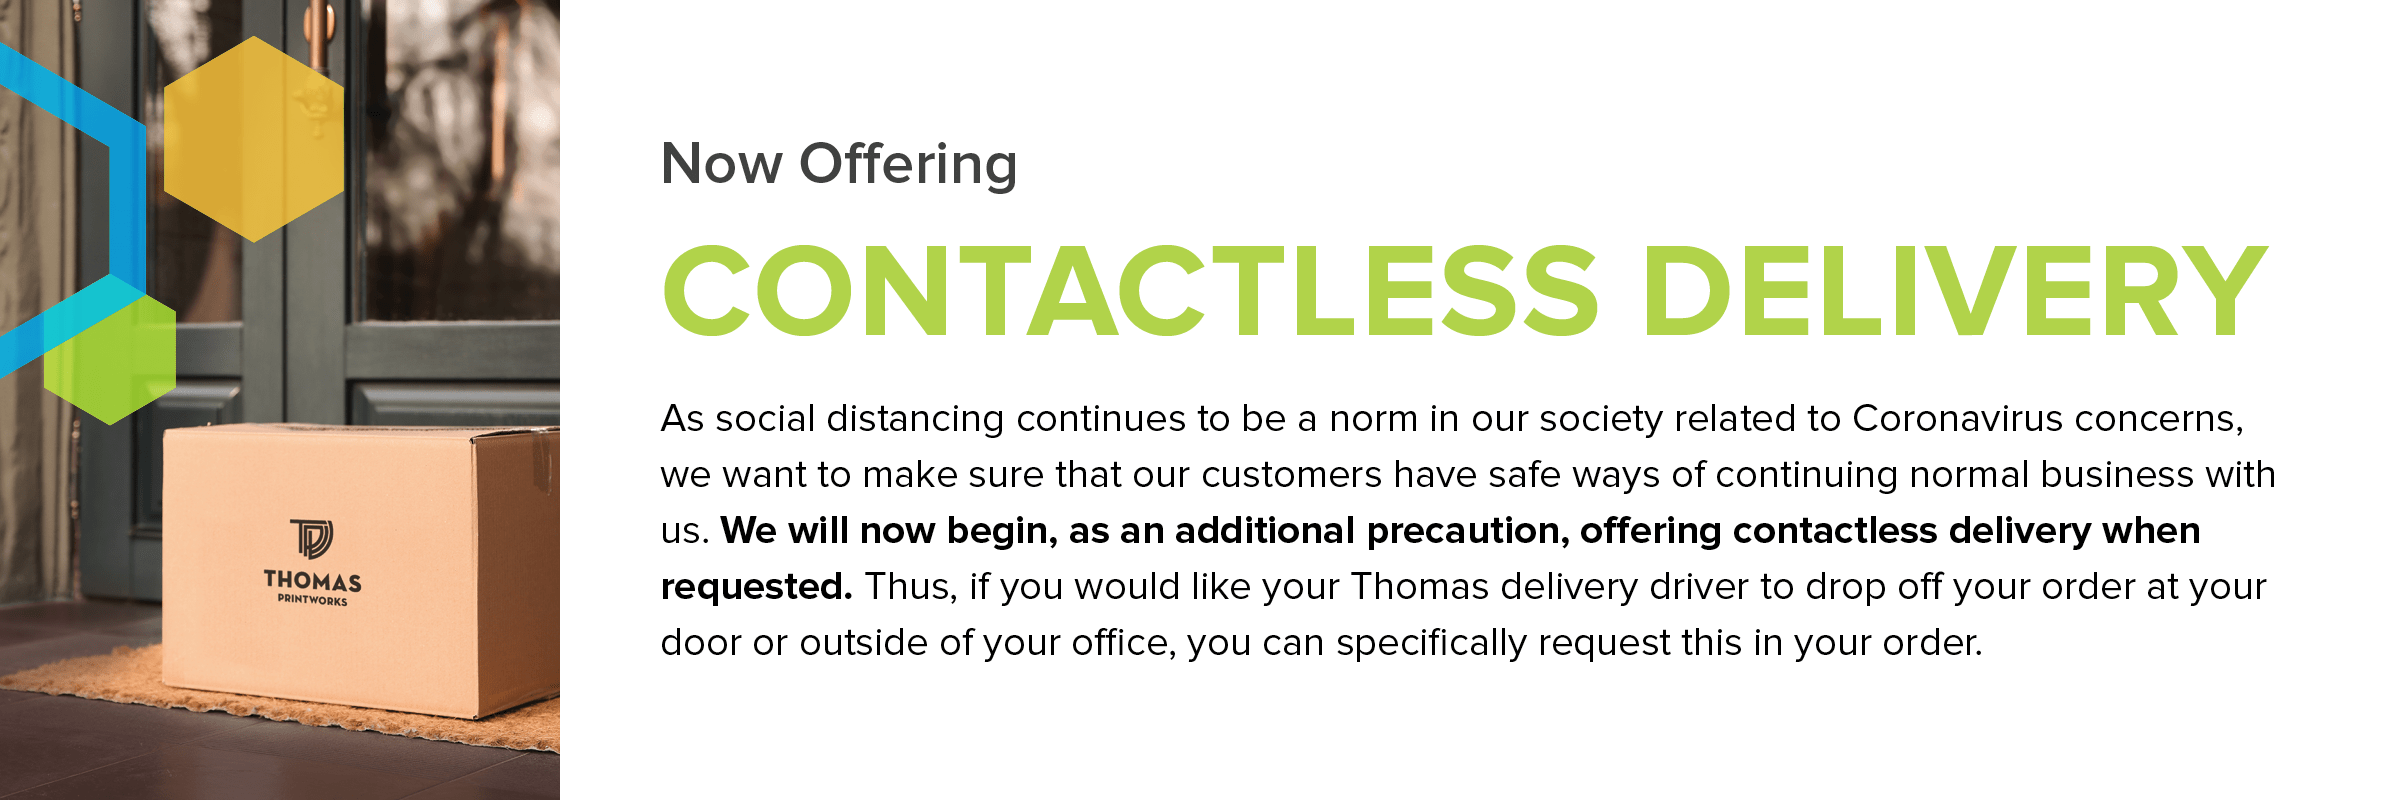 Thomas Printworks now offers contactless delivery.